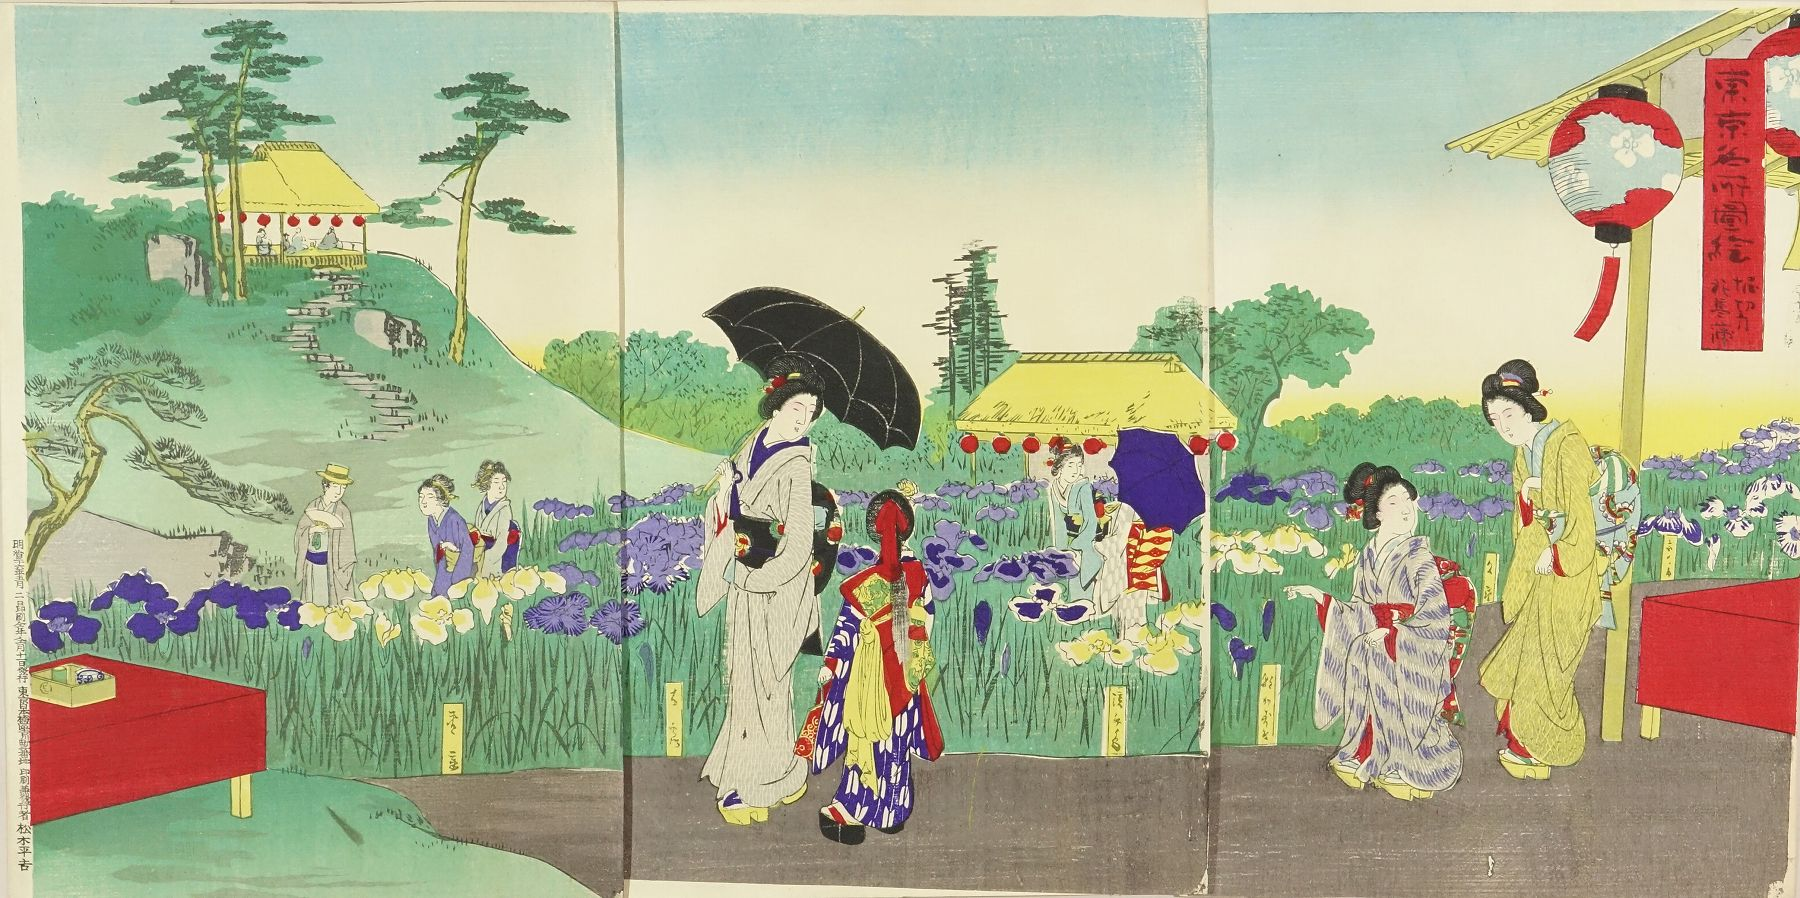 UNSIGNED Iris at Horikiri, from <i>Tokyo meisho zue</i> (Pictures of famous places of Tokyo), triptych